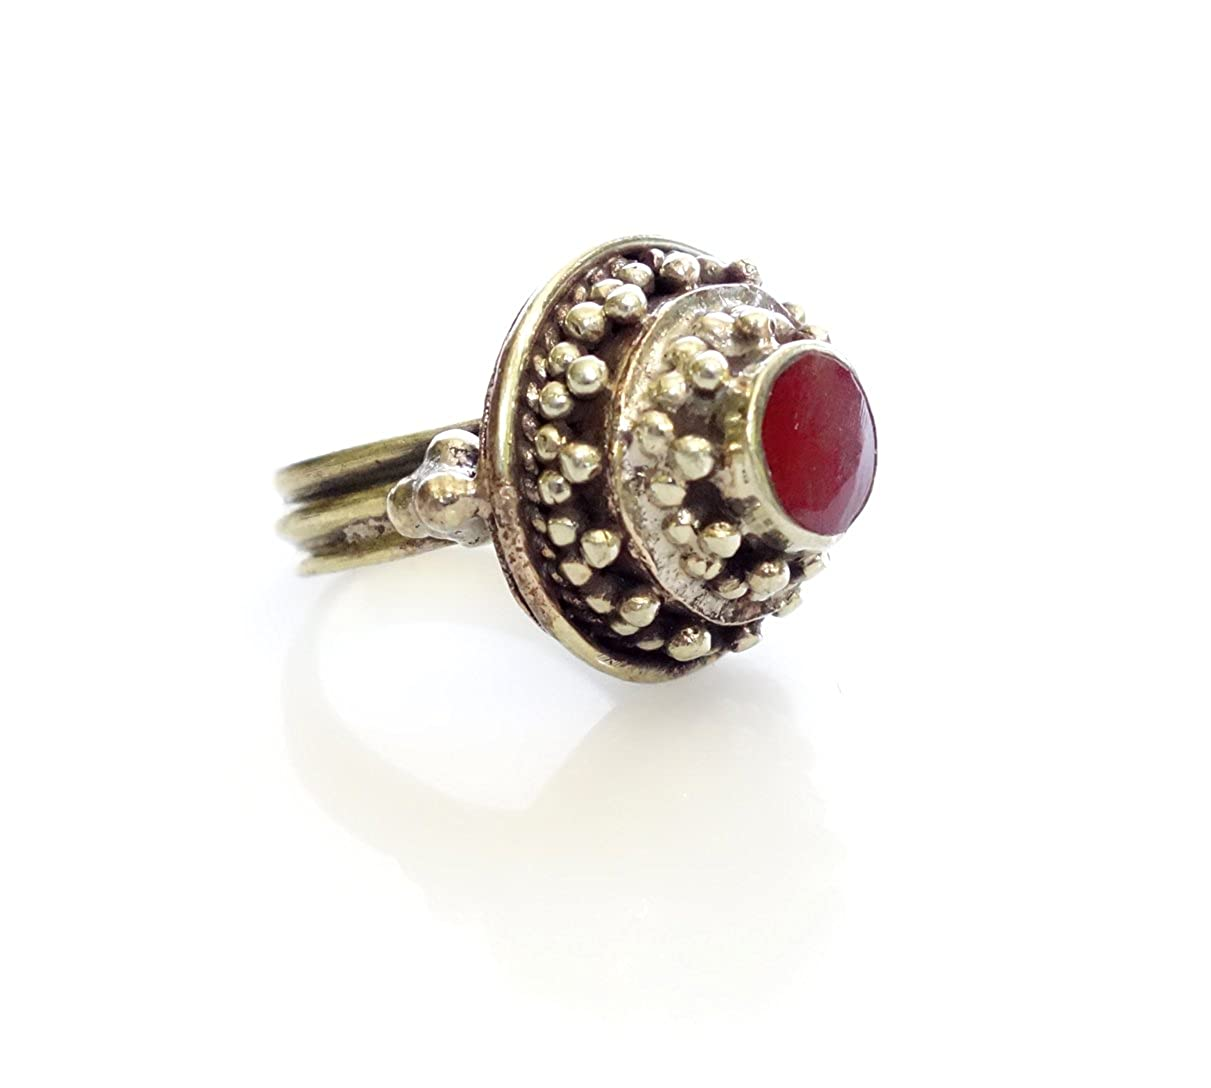 Tibetan Silver BEAUTIFUL FINE FILIGREE ENGRAVING CORAL RING HANDMADE IN OXIDIZED SILVER PLATED RING WOMEN YOUNG GIRLS